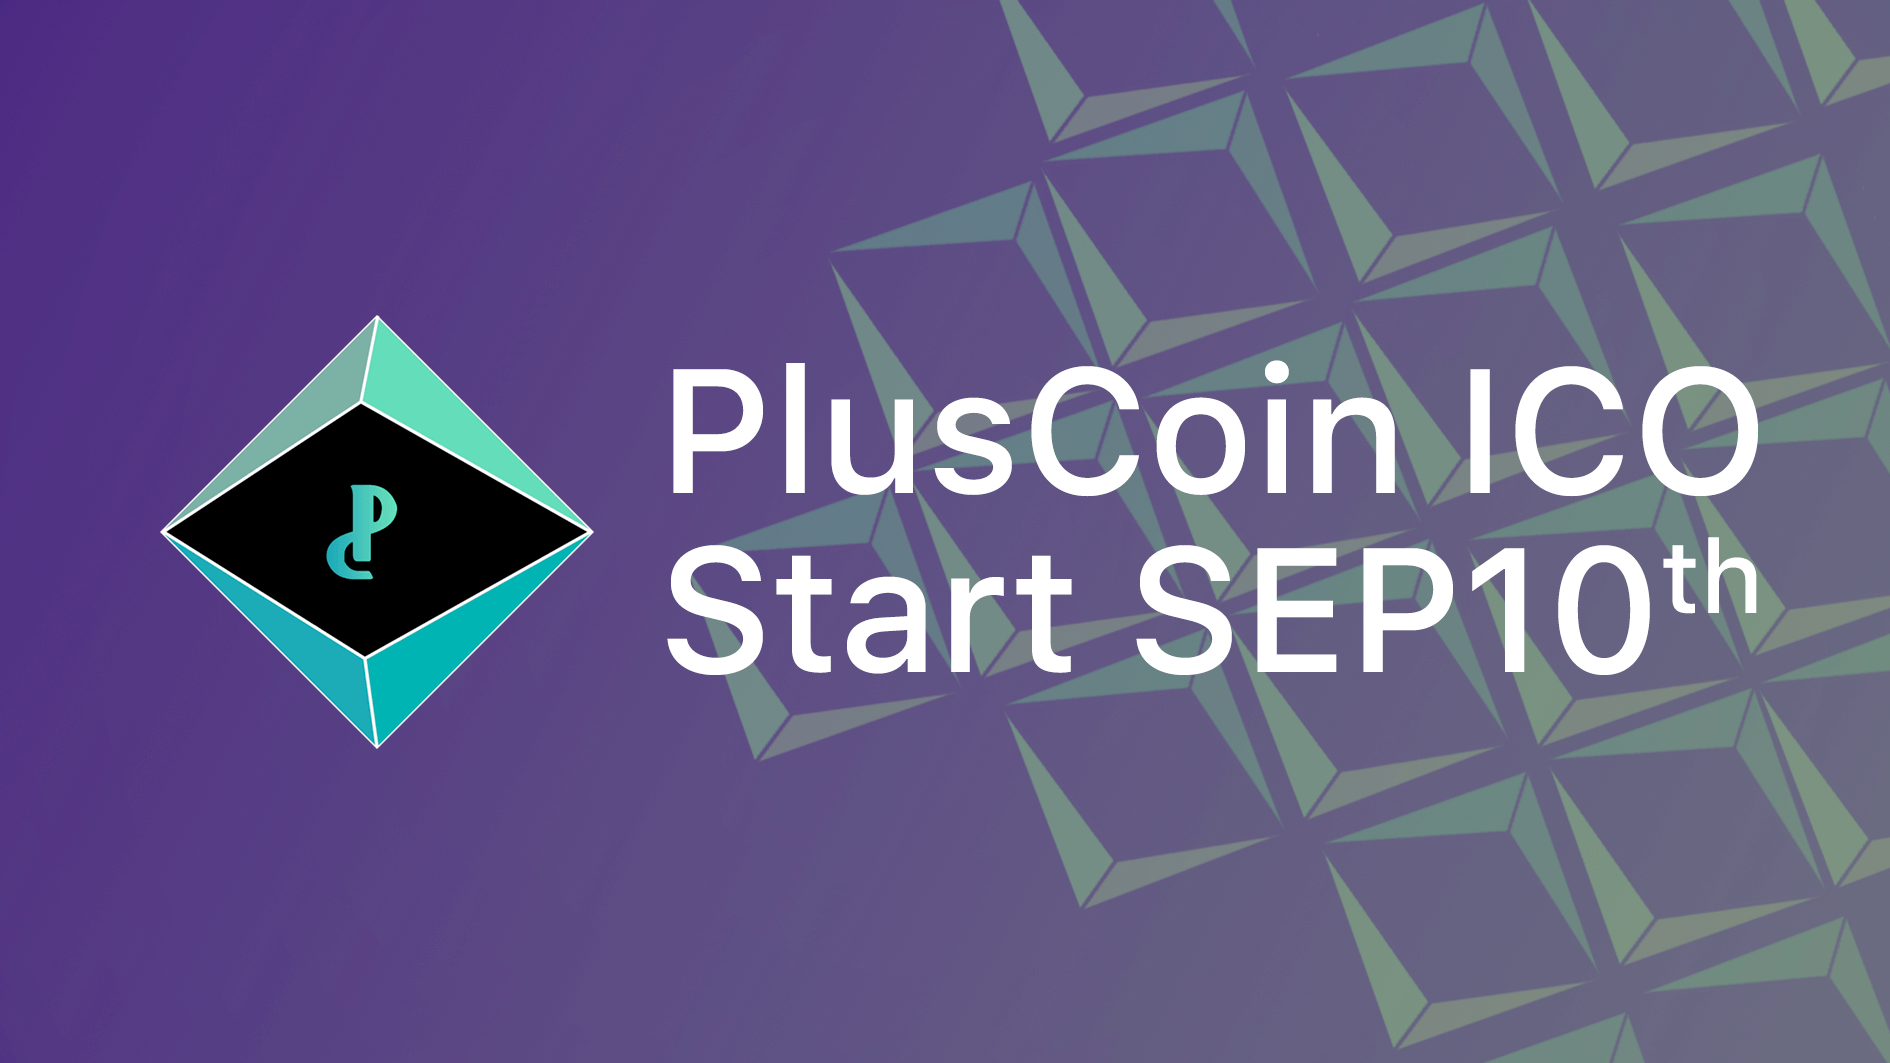 Pluscoin, ICO, crowdsale, cryptocurrency